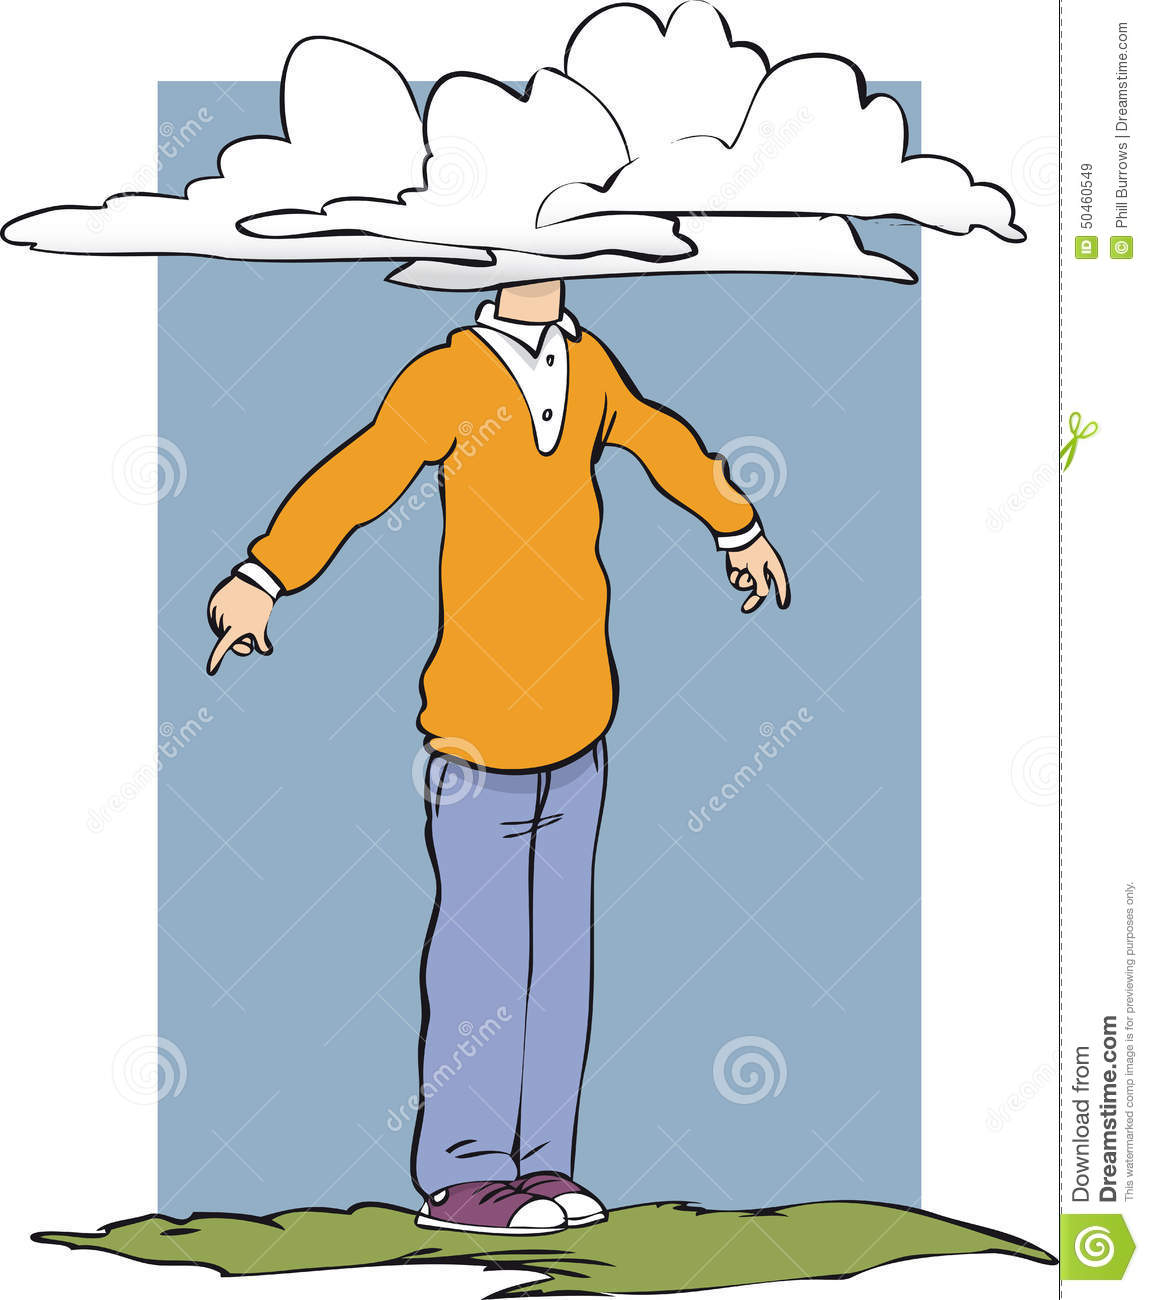 Image result for head in the clouds feet on the ground